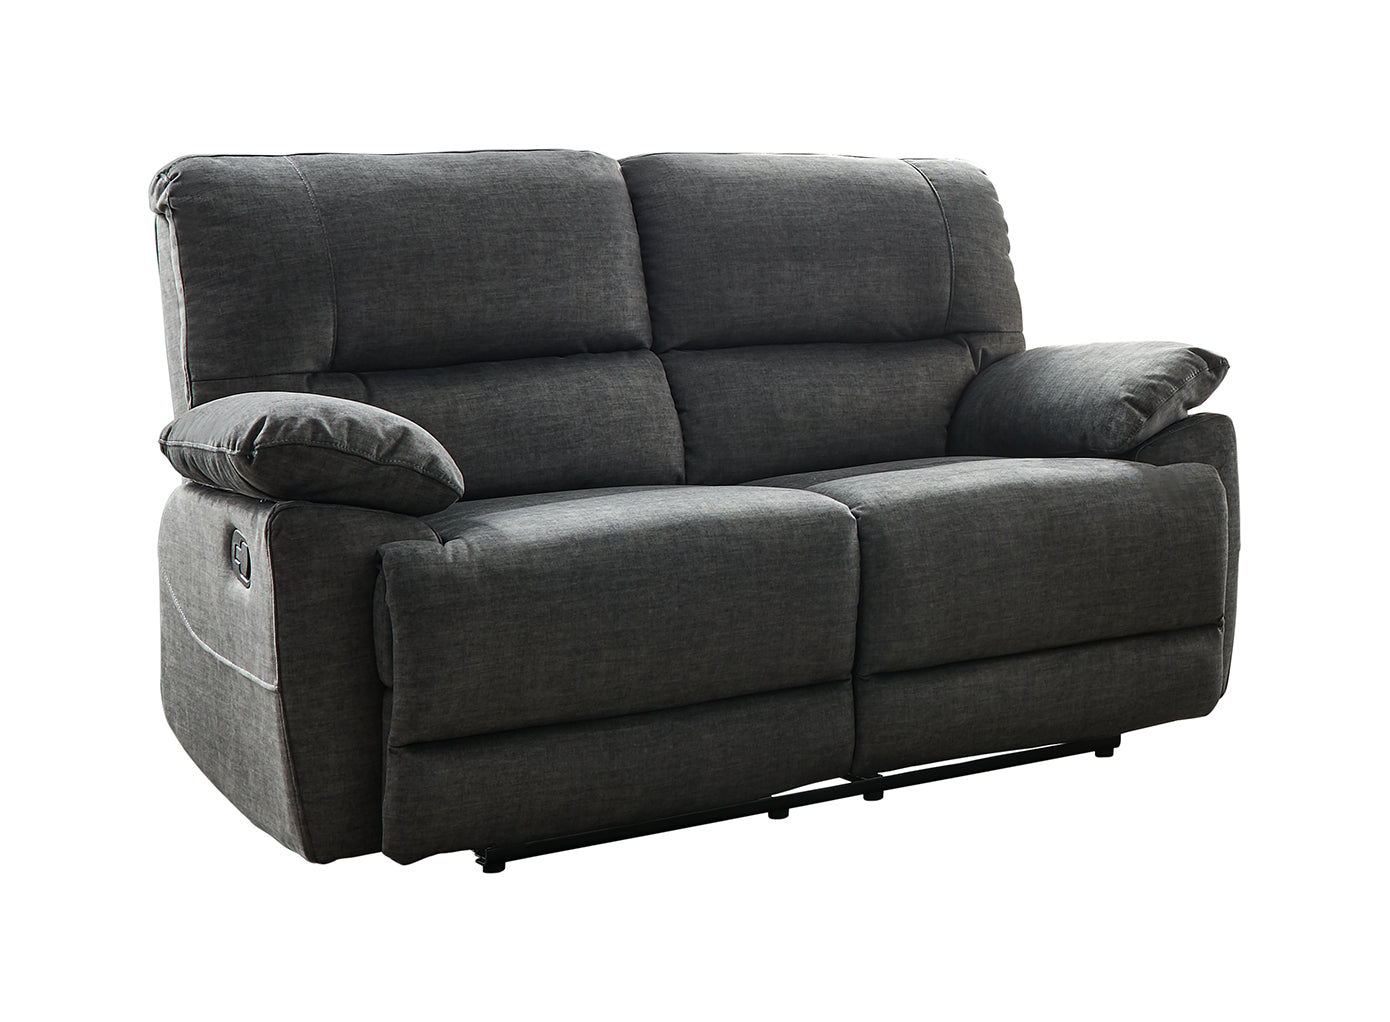 Zoe 2 Seater Manual Recliner